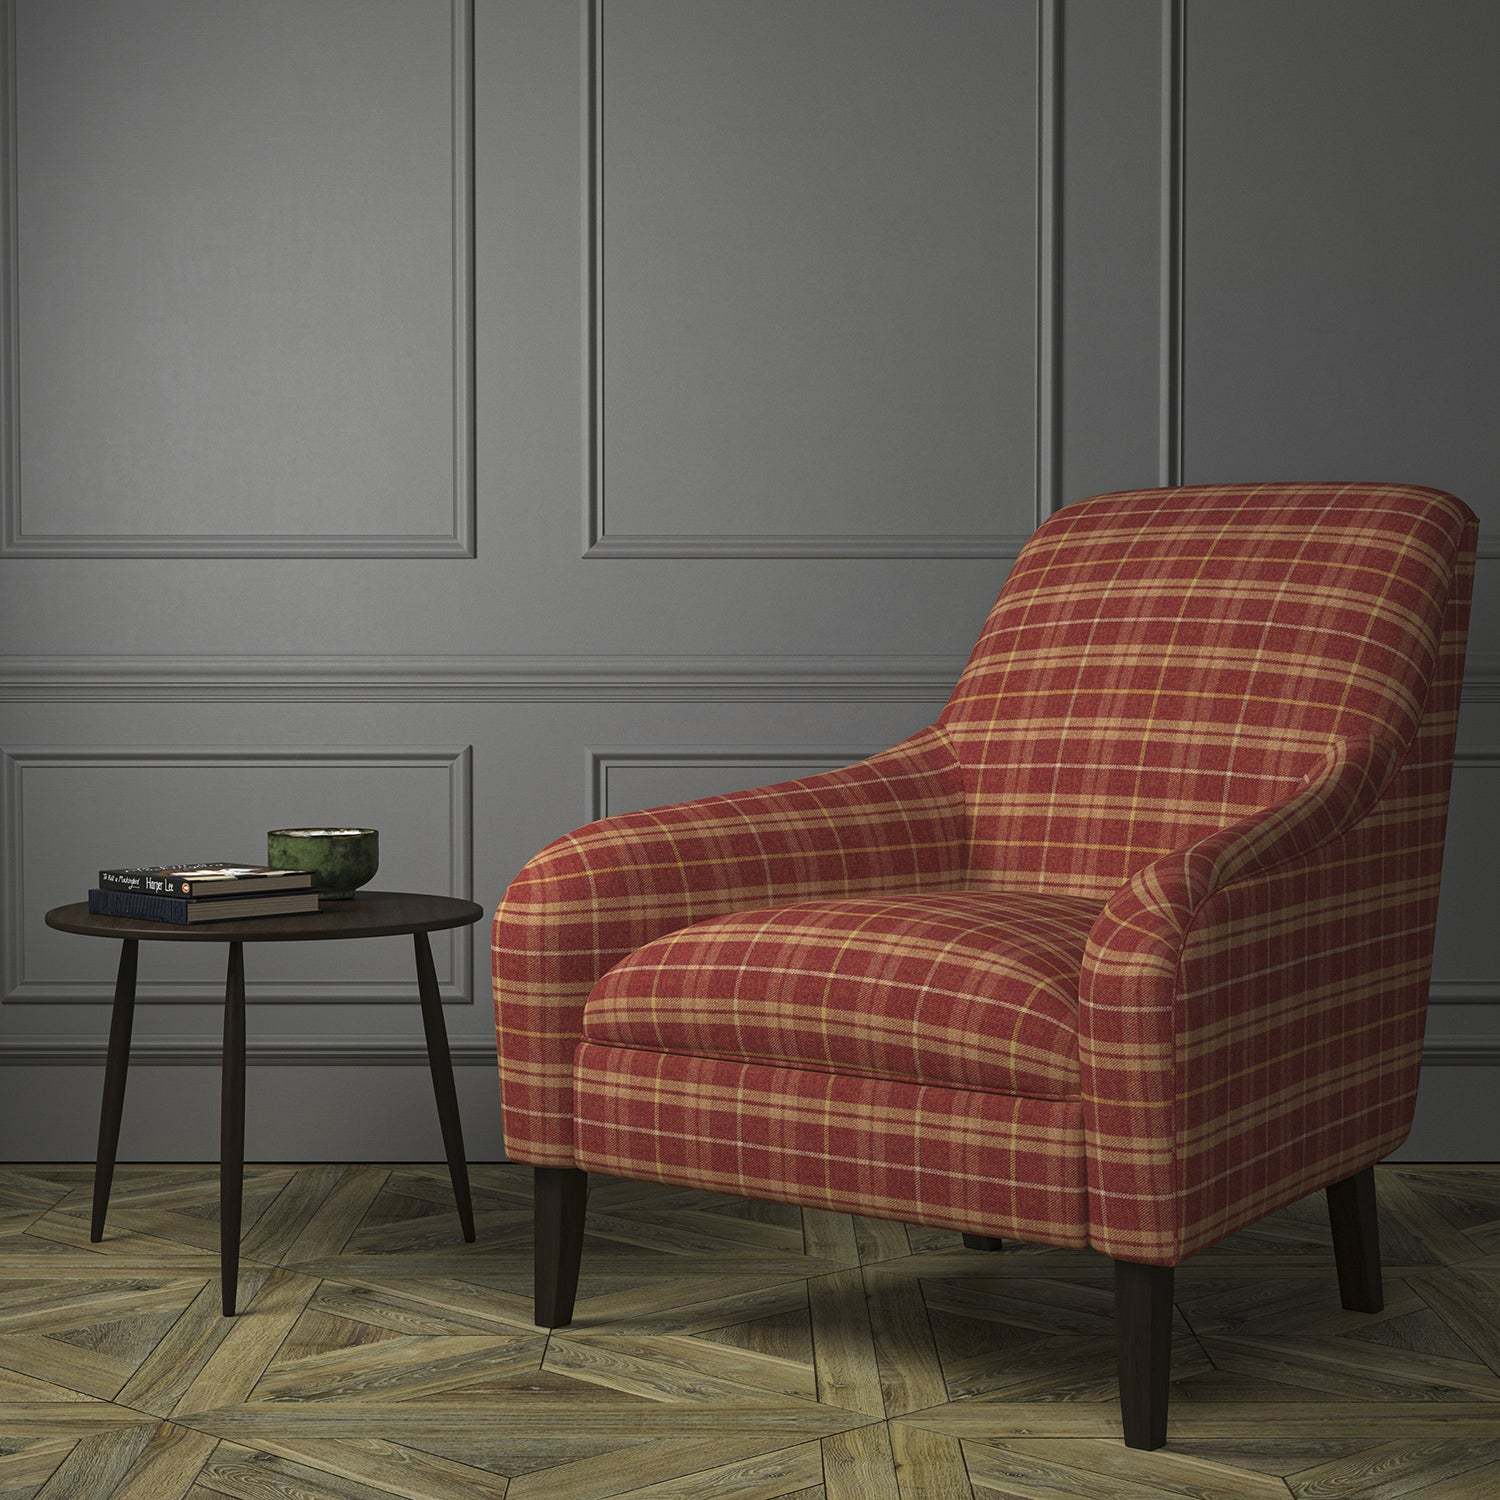 Chair upholstered in a red Scottish wool plaid check fabric